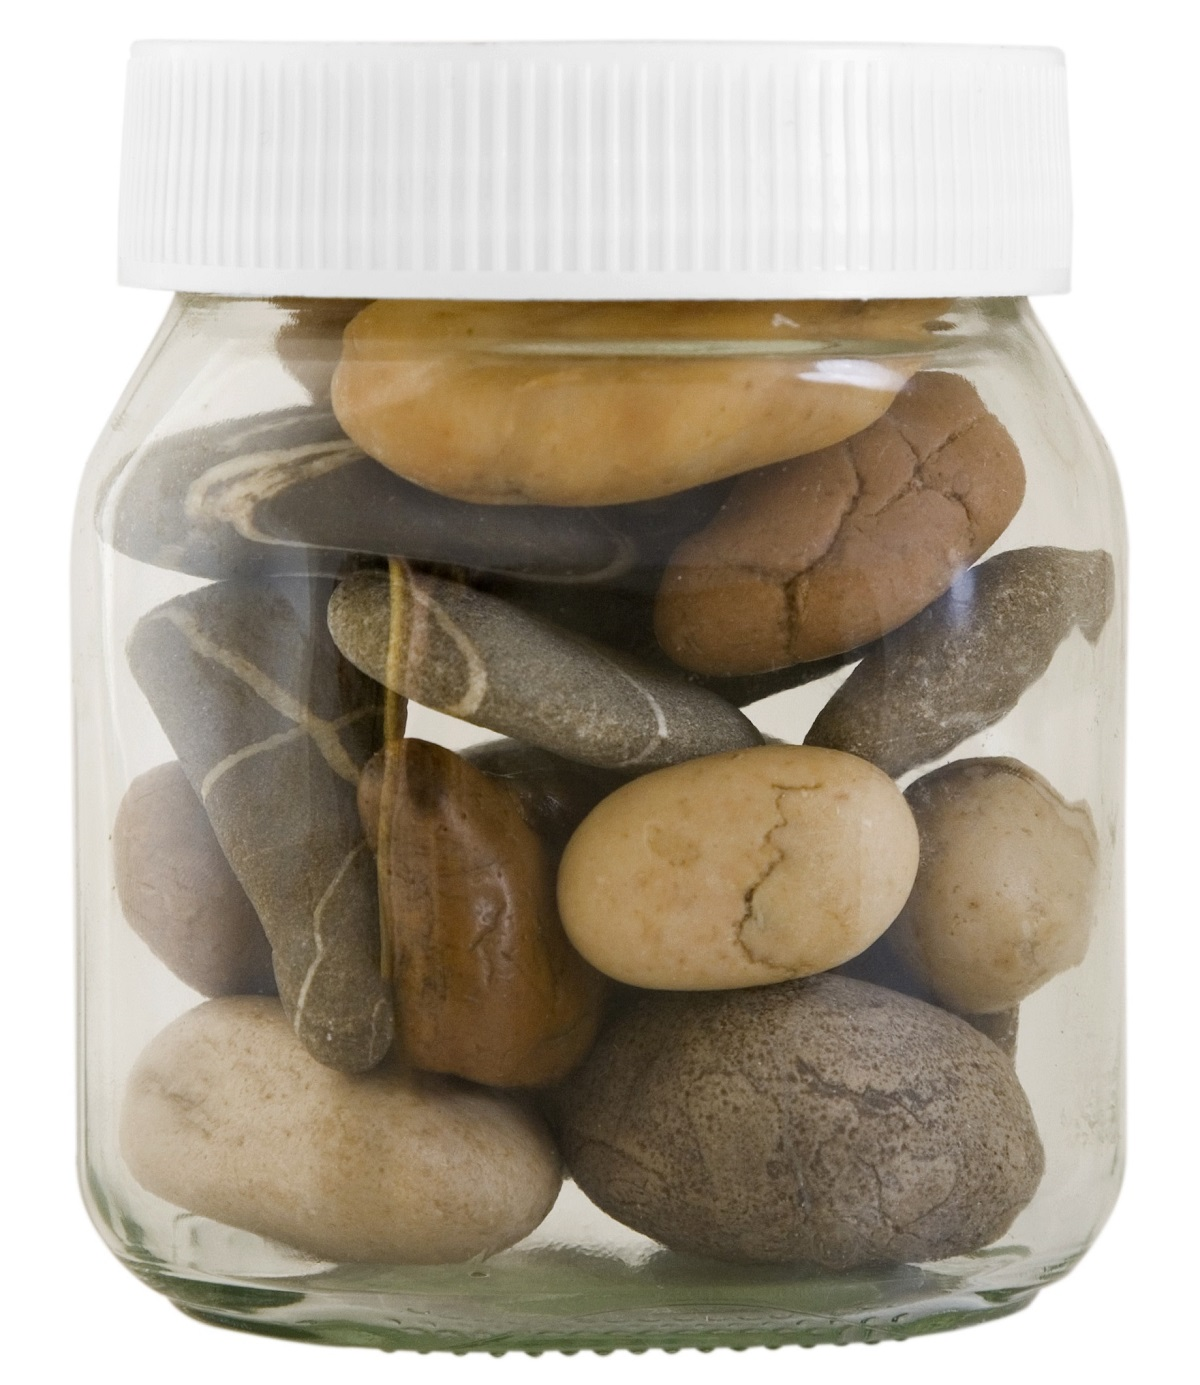 jar of rocks cropped 1K px